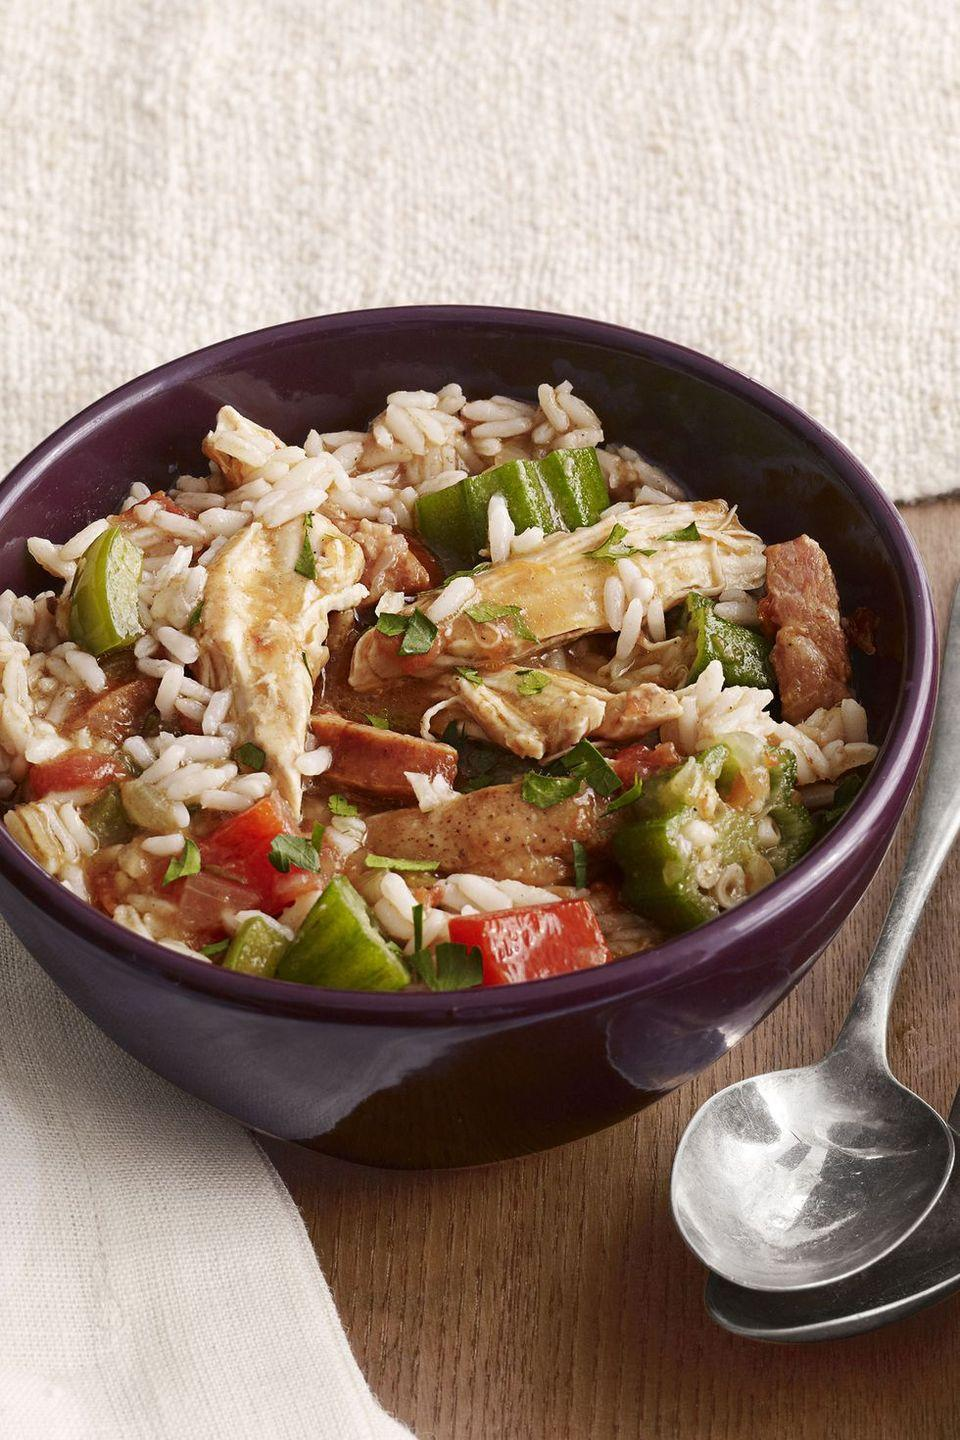 "<p>A warming stew full of bright, crisp veggies, lean chicken, and spicy andouille sausage, this gumbo is a stick-to-your-ribs dish that's perfect during the cold winter months.</p><p><strong><a href=""https://www.countryliving.com/food-drinks/recipes/a4077/chicken-andouille-gumbo-recipe-clv0212/"" rel=""nofollow noopener"" target=""_blank"" data-ylk=""slk:Get the recipe."" class=""link rapid-noclick-resp"">Get the recipe.</a></strong></p>"